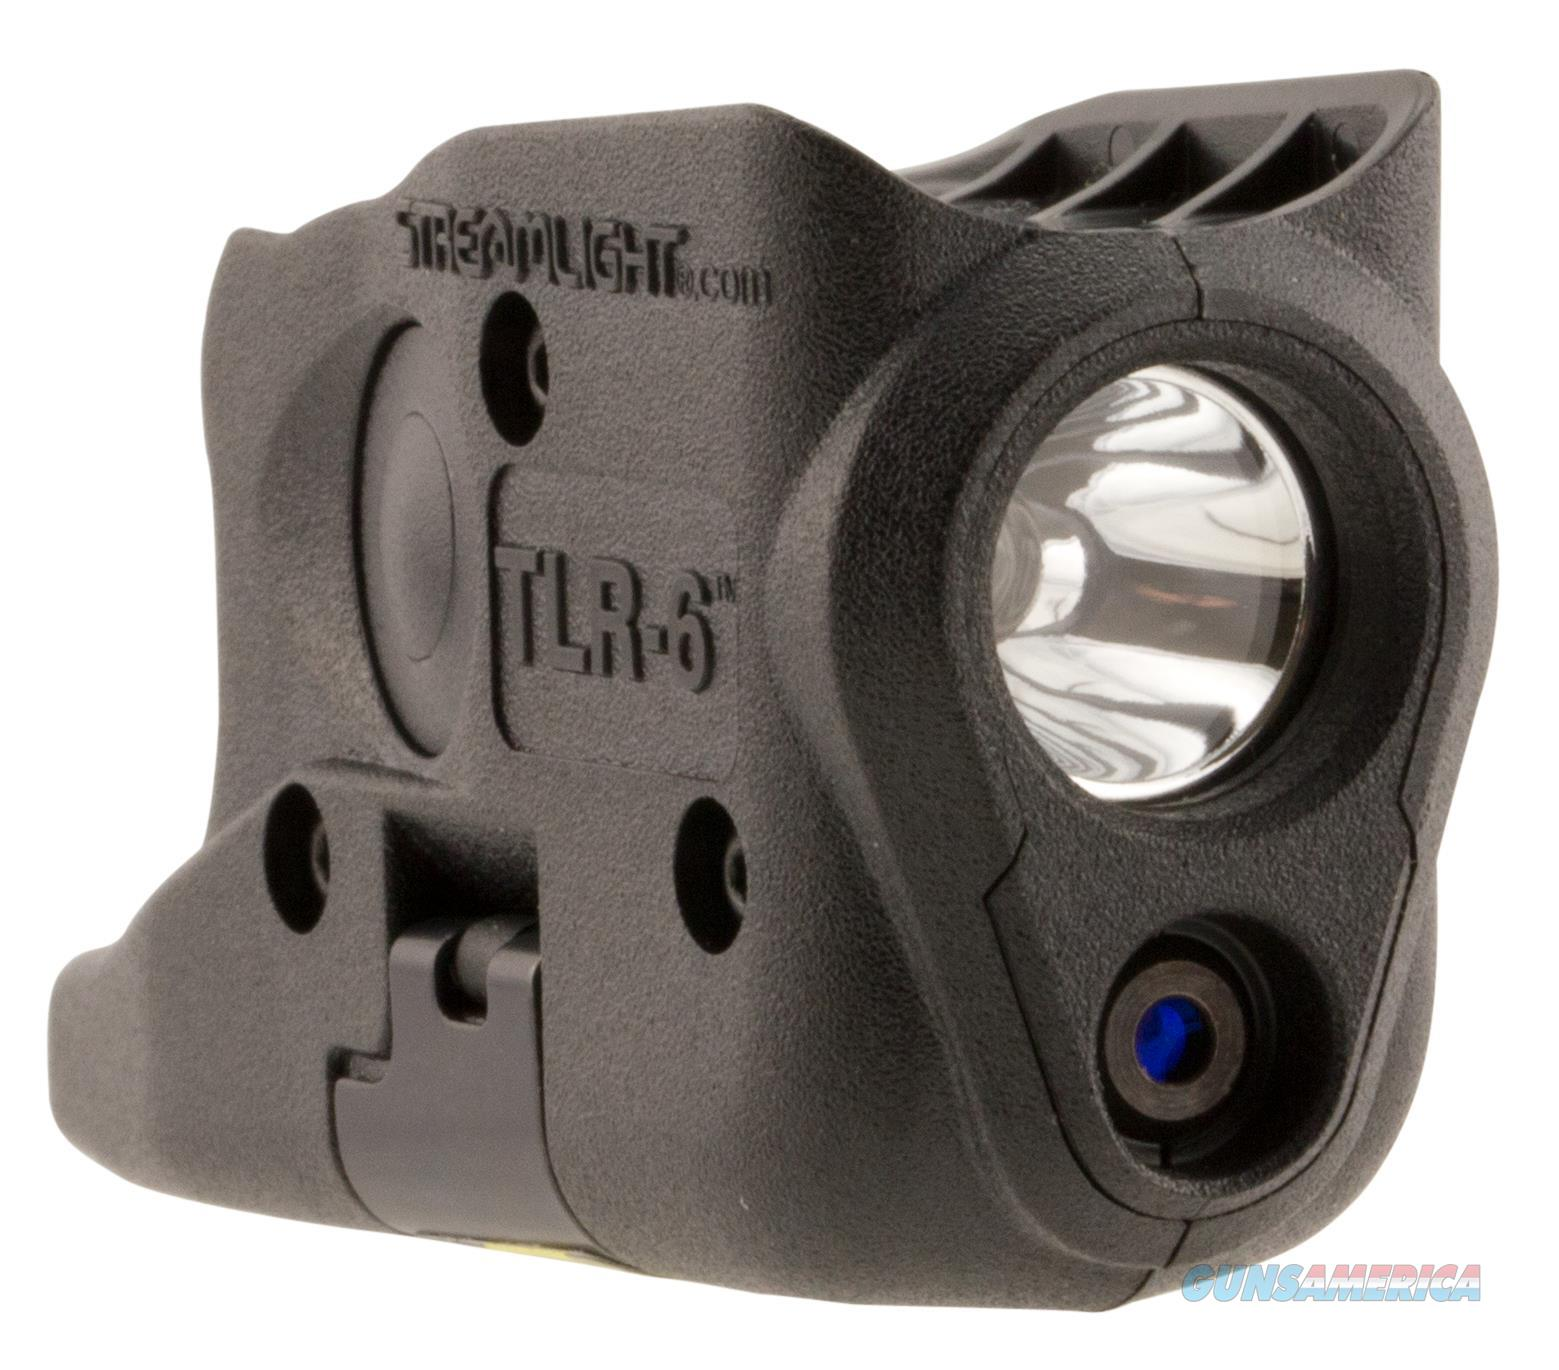 Streamlight 69272 Tlr-6 Laser/Light Combo 100 Lumens Cr-1/3N (2) Black 69272  Non-Guns > Gun Parts > Misc > Rifles